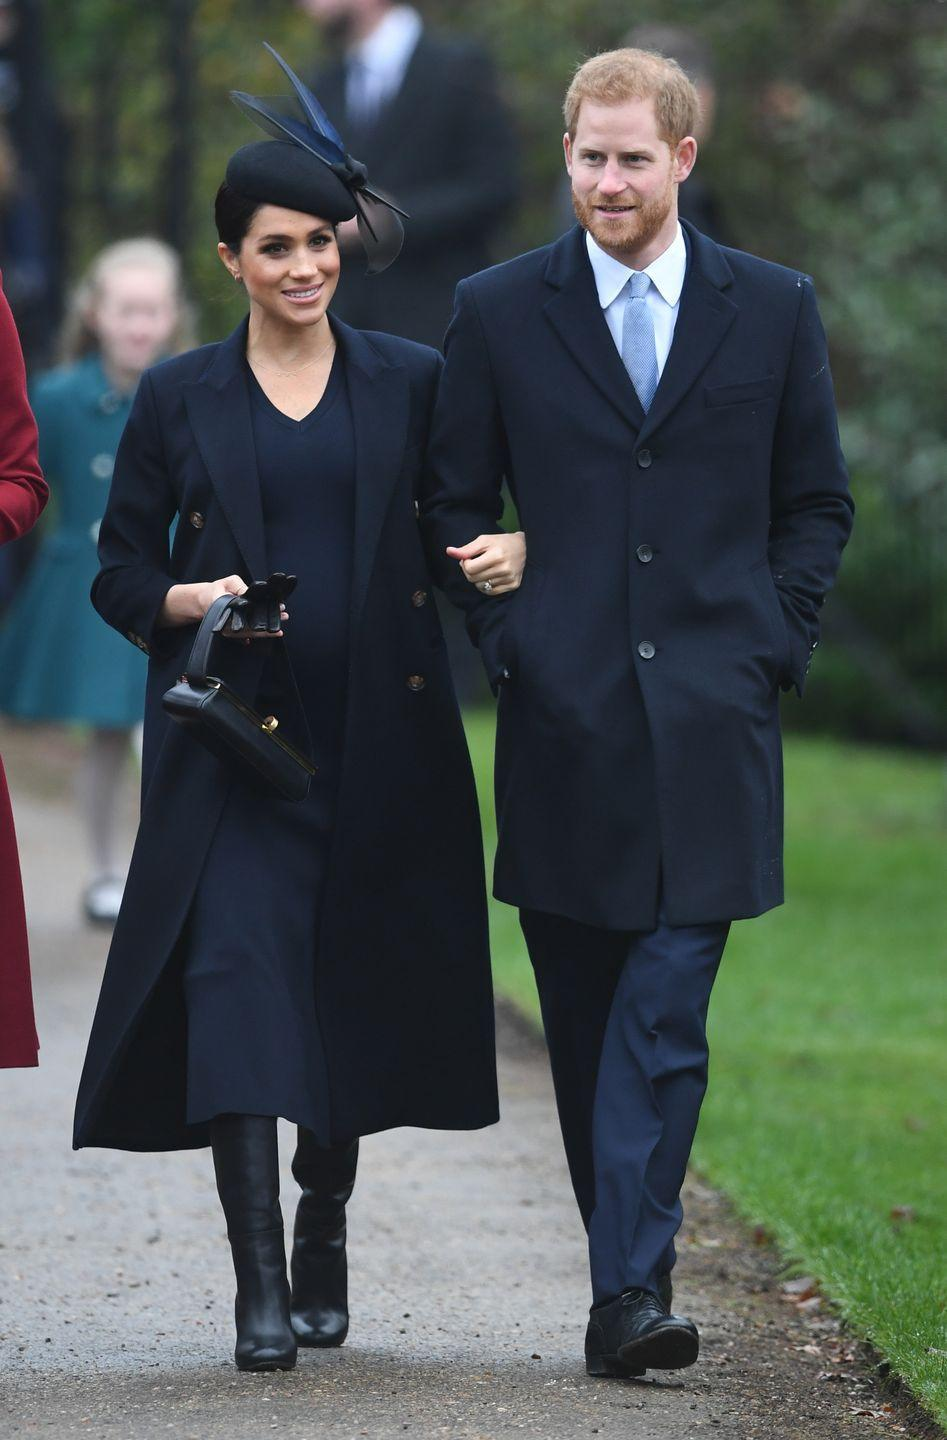 "<p>The Duke and Duchess of Sussex <a href=""https://www.townandcountrymag.com/society/tradition/g24689235/royal-family-christmas-photos/"" rel=""nofollow noopener"" target=""_blank"" data-ylk=""slk:arrived with Prince William and Kate Middleton"" class=""link rapid-noclick-resp"">arrived with Prince William and Kate Middleton</a> to St. Mary Magdalene Church on the Sandringham Estate. </p>"